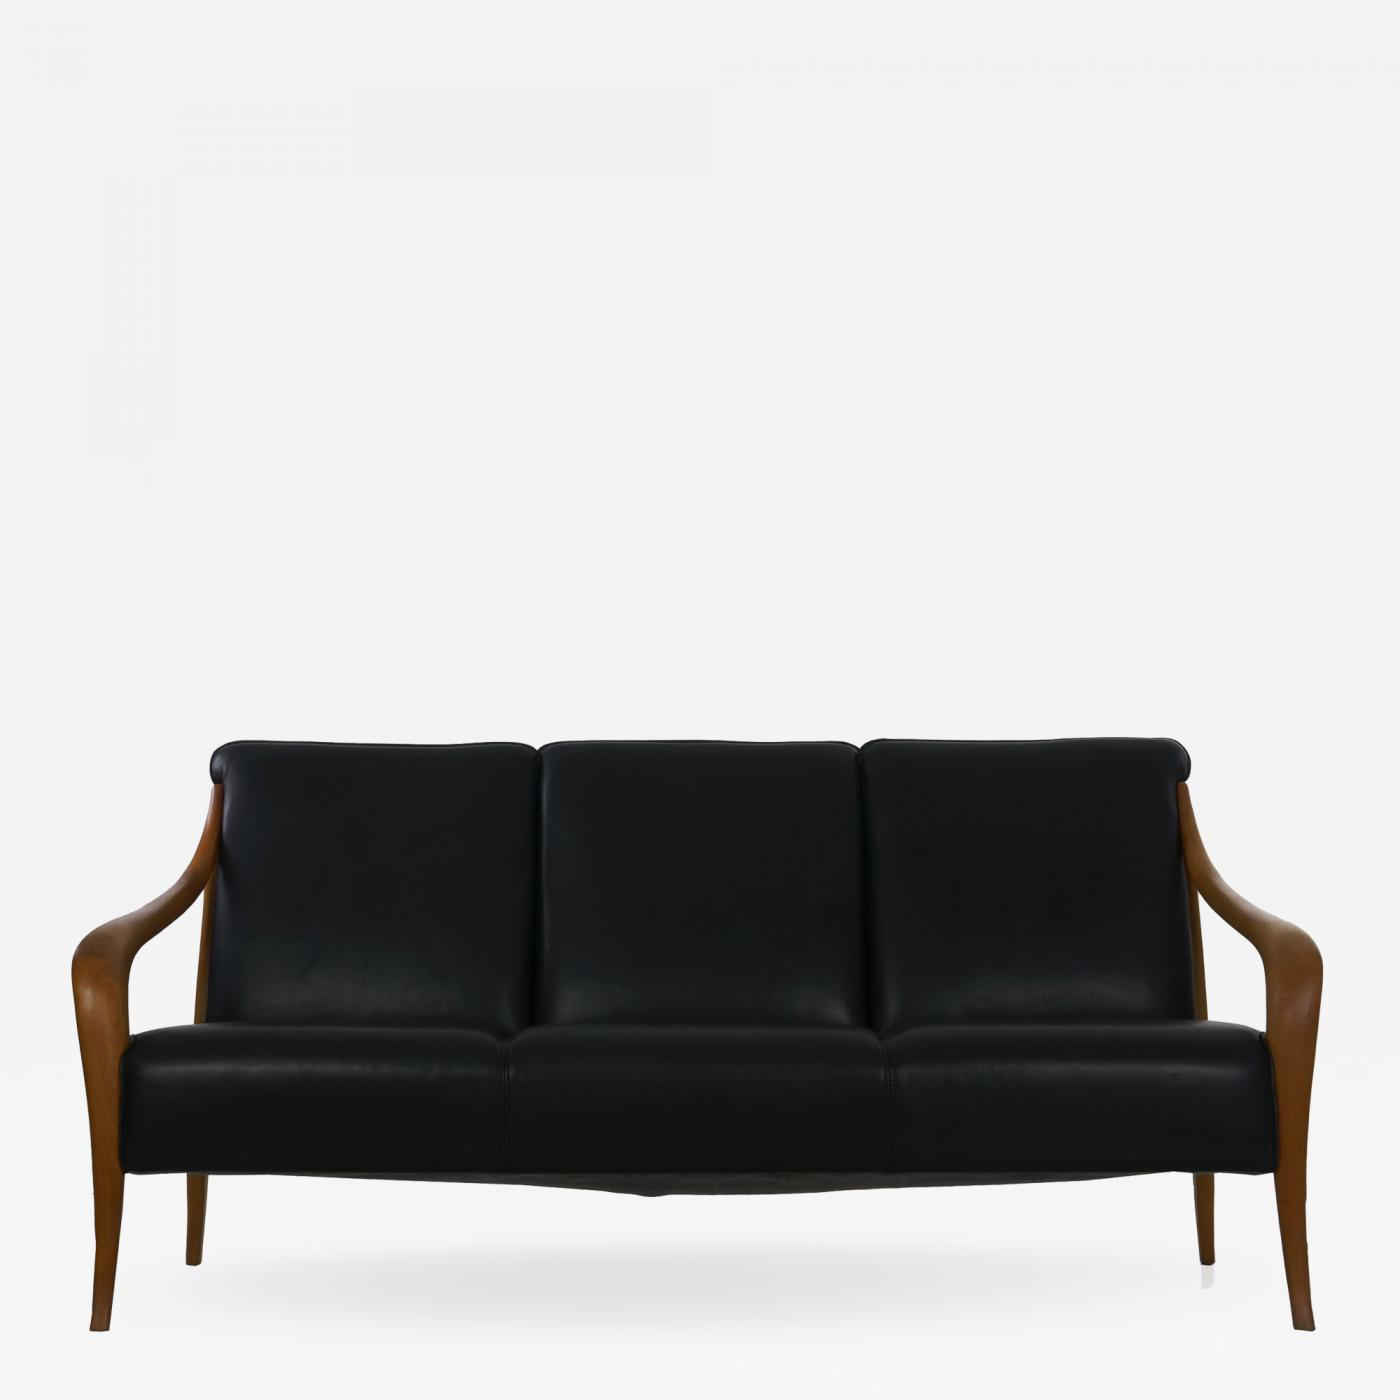 Wagner Danish Mid Century Modern Style Sculpted Teak Black Leather Sofa By Wagner